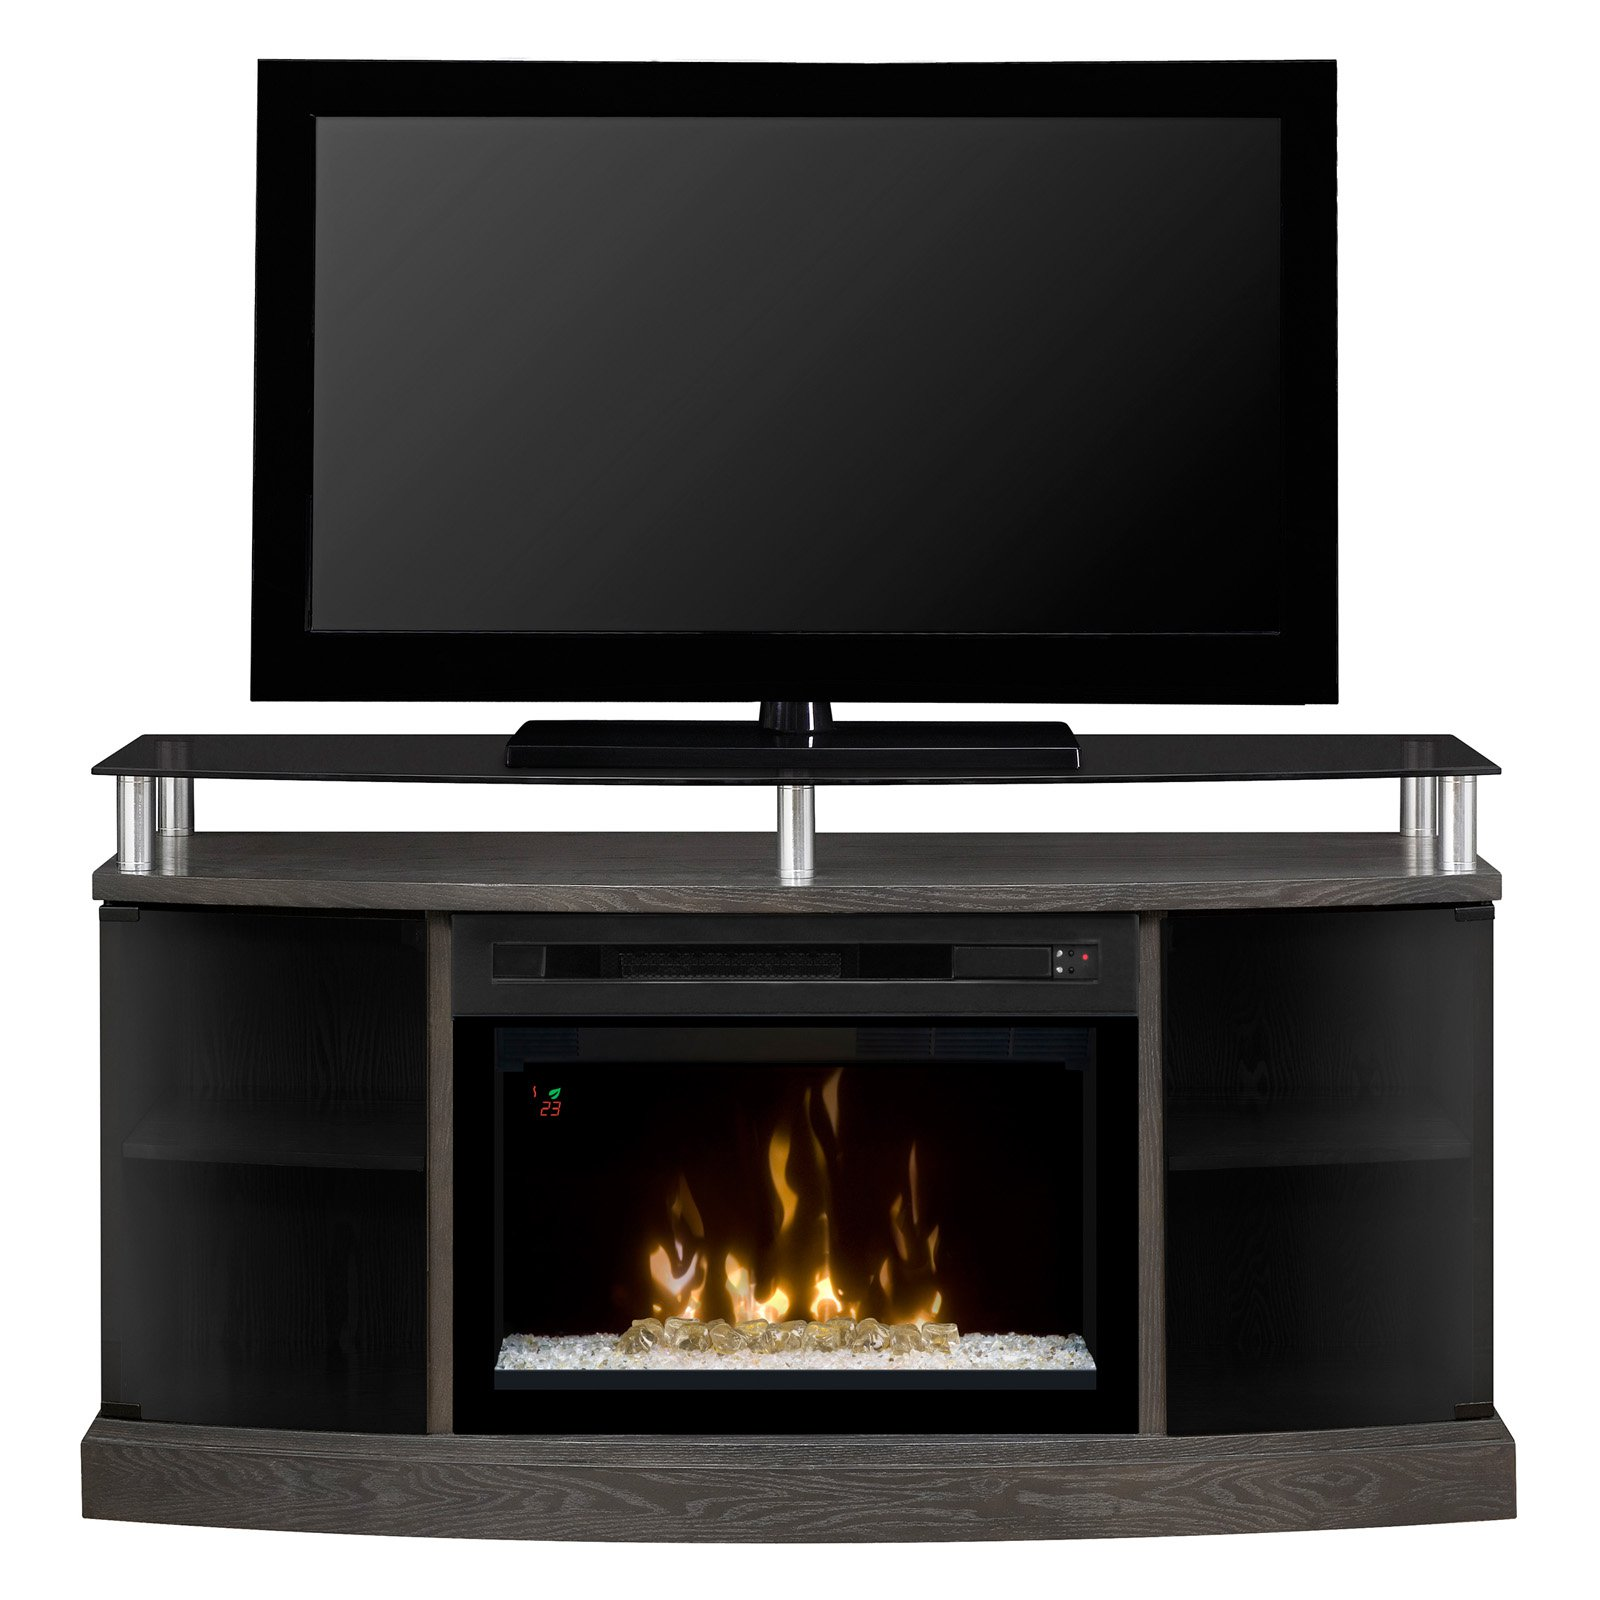 "Dimplex Windham Media Console Electric Fireplace With 25"" Multi-Fire Curved Glass Firebox for TVs up to 55"", Silver & Charcoal"